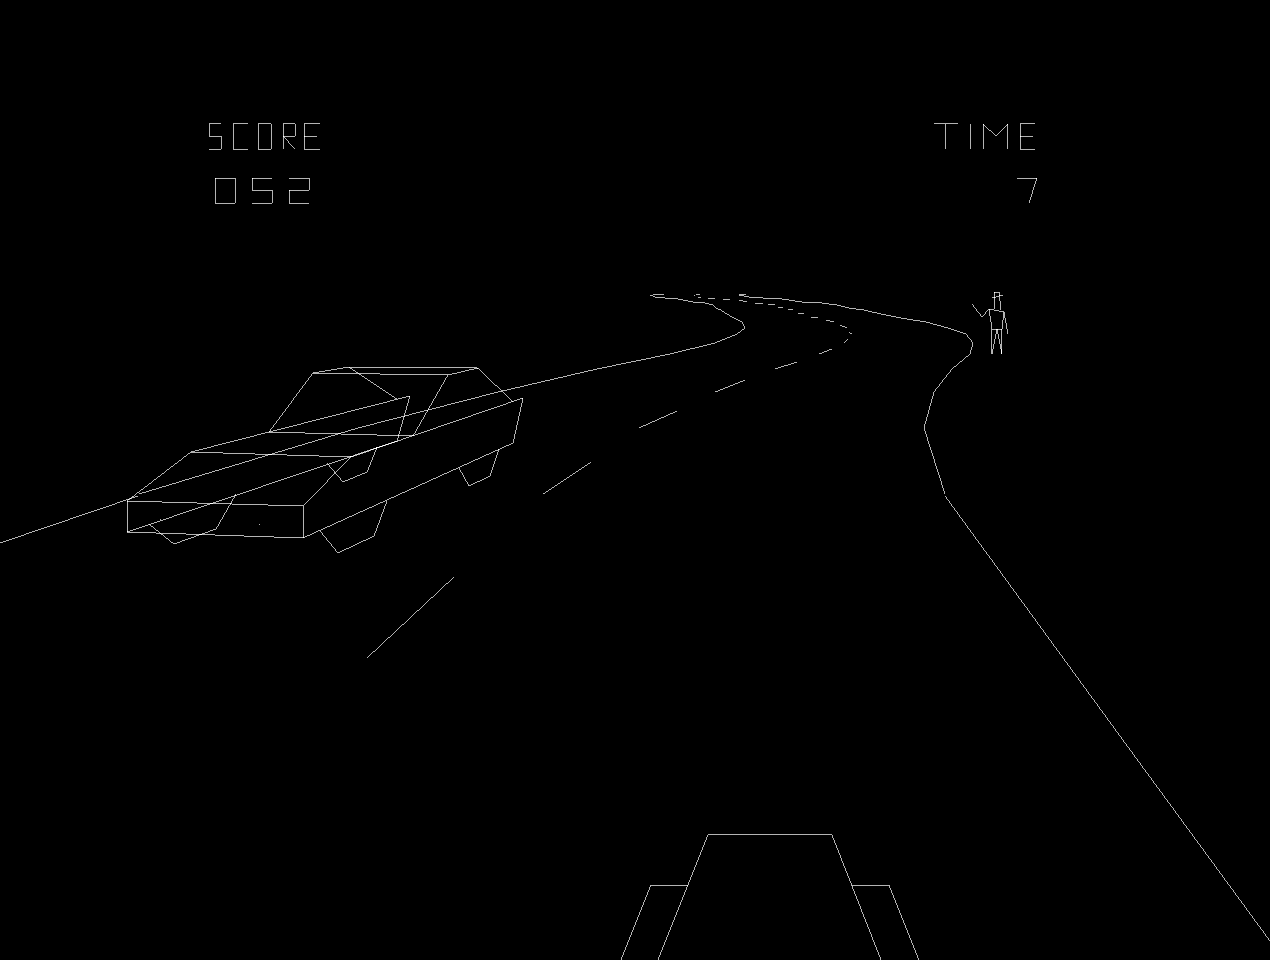 Gameplay image of Speed Freak, a vector arcade video game by Vectorbeam 1977